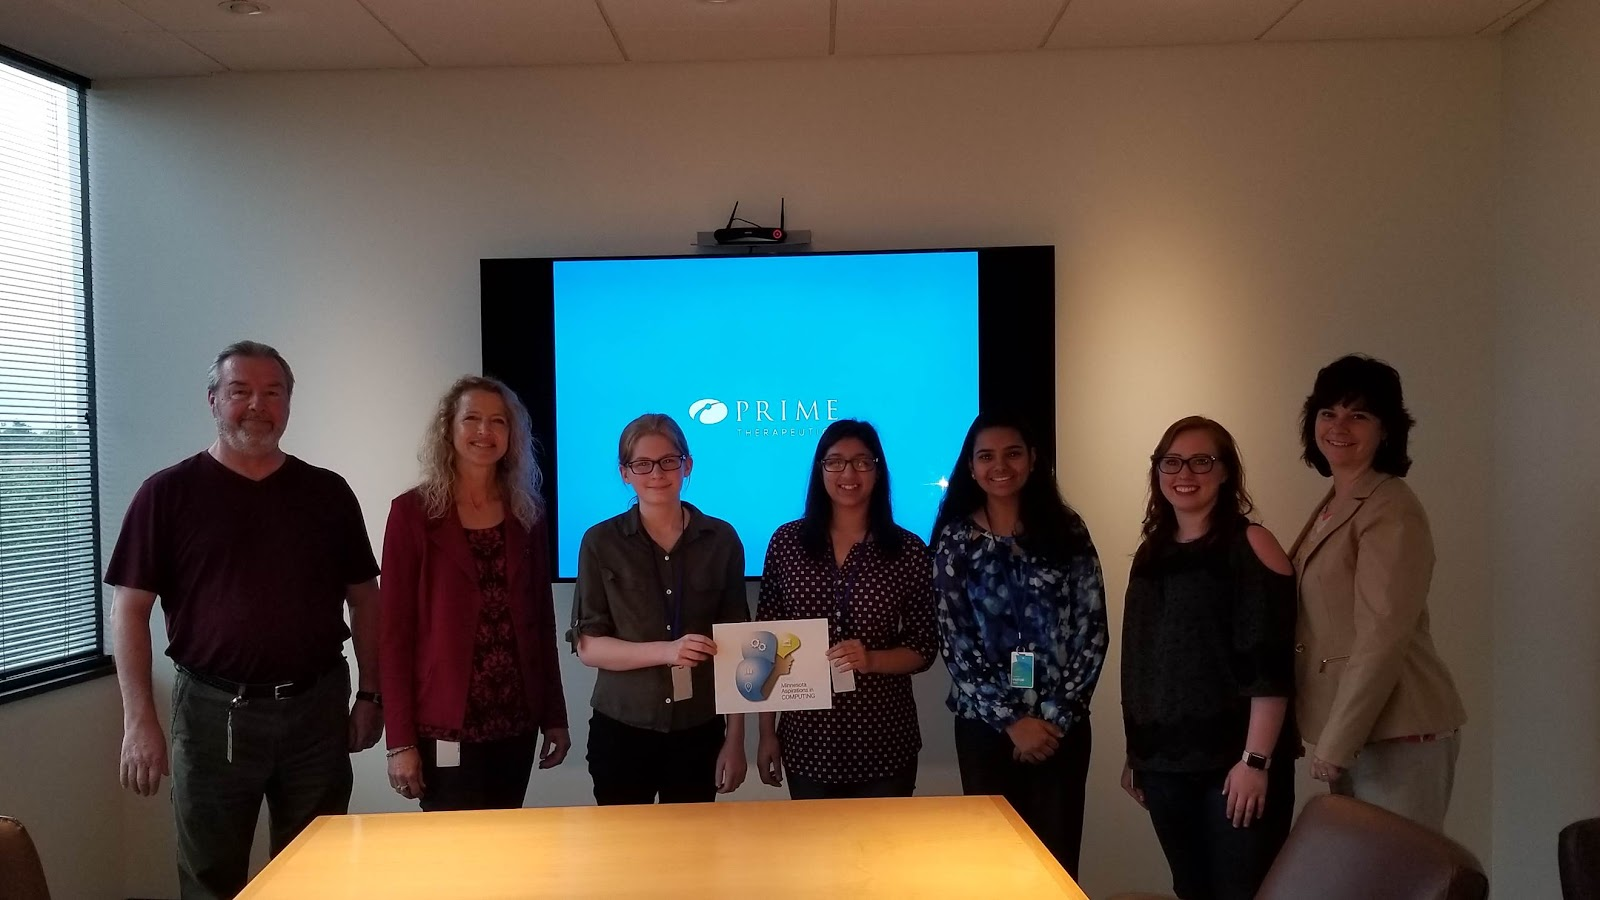 L to R: David Sagisser and Kristi Portugue (Prime Therapeutics) Kajsa Arnold, Mayo High School in Rochester, Petra Asani, Eastview High School in Apple Valley, Anusha Sharma, Eagan High School, Brittany Paulson and Sue Stewart (Prime Therapeutics)